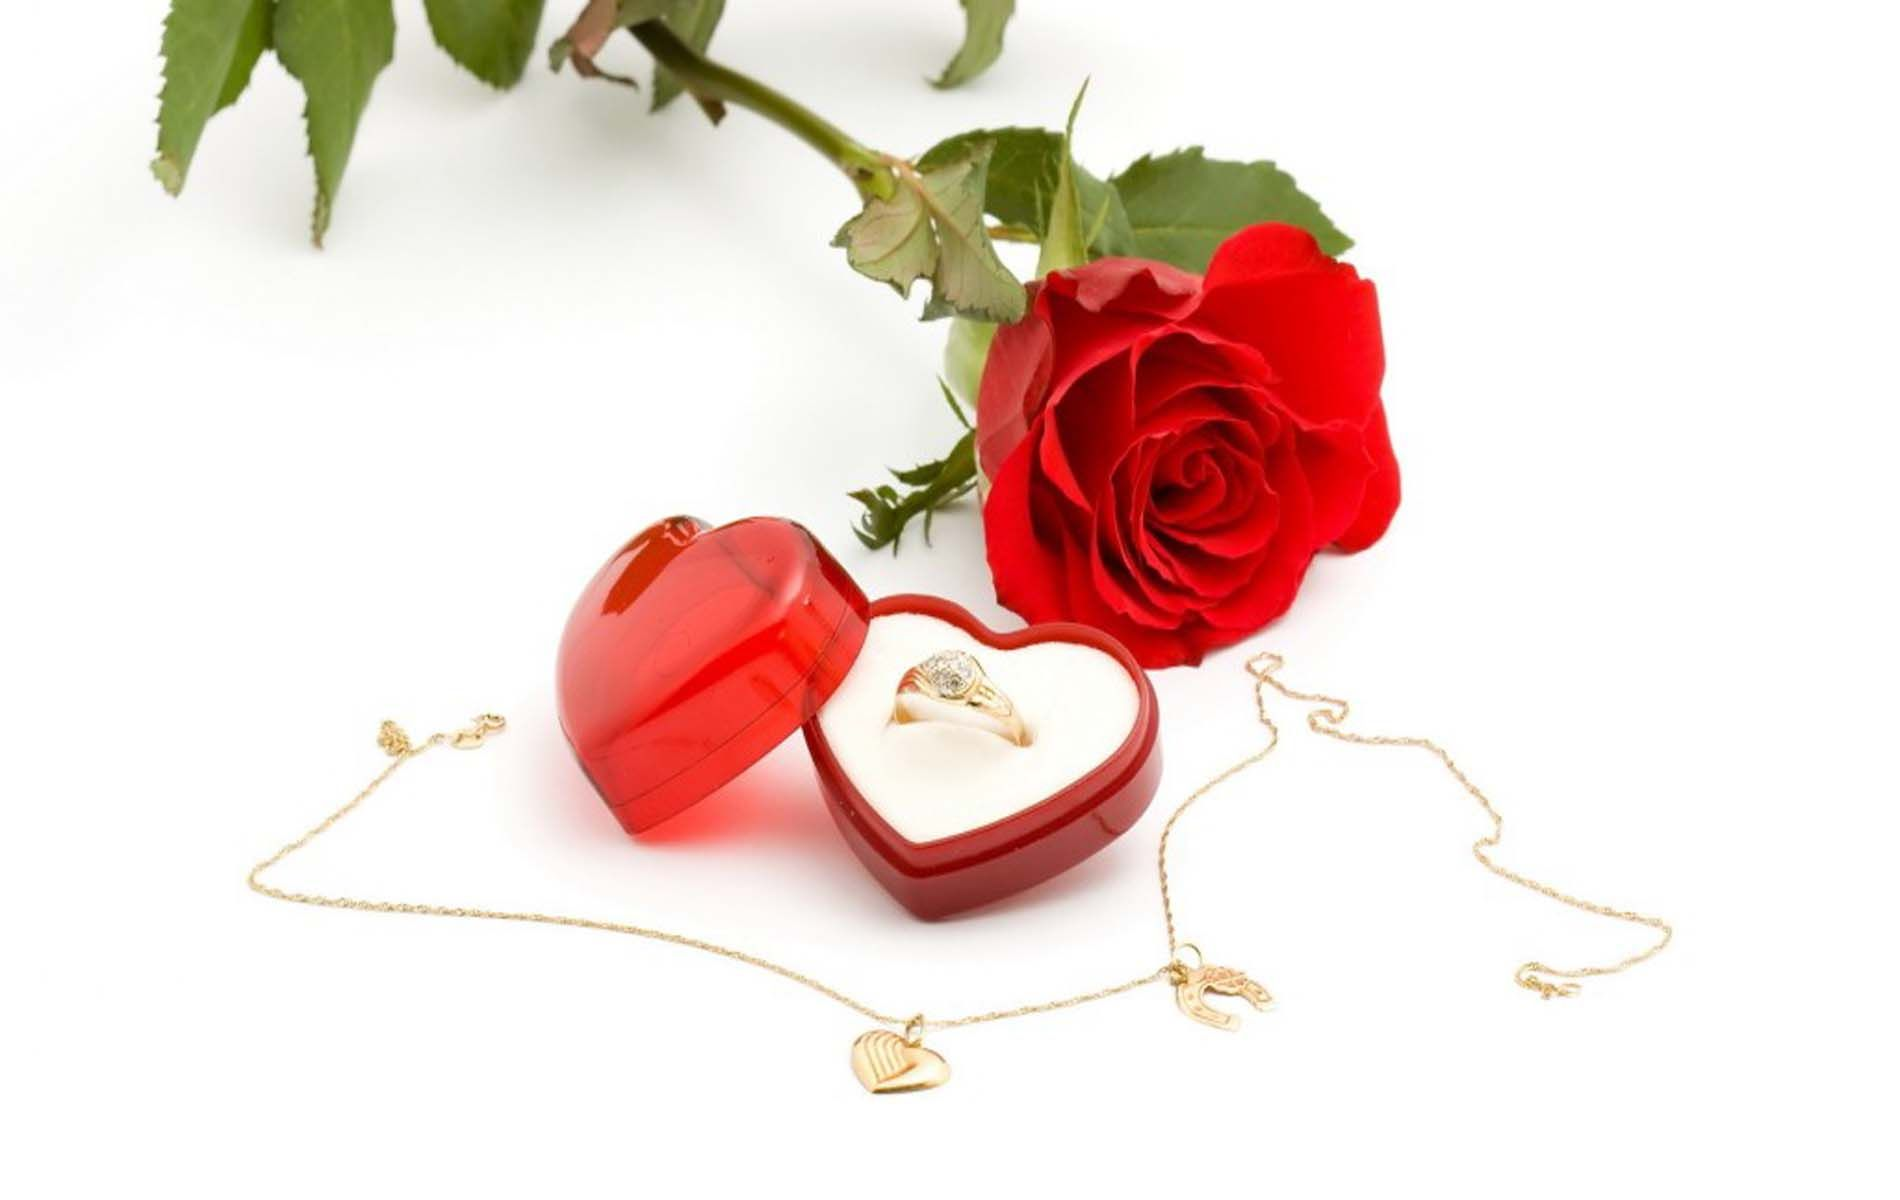 Awesome Rose And Love Images High Resolution Widescreen For Androids ...